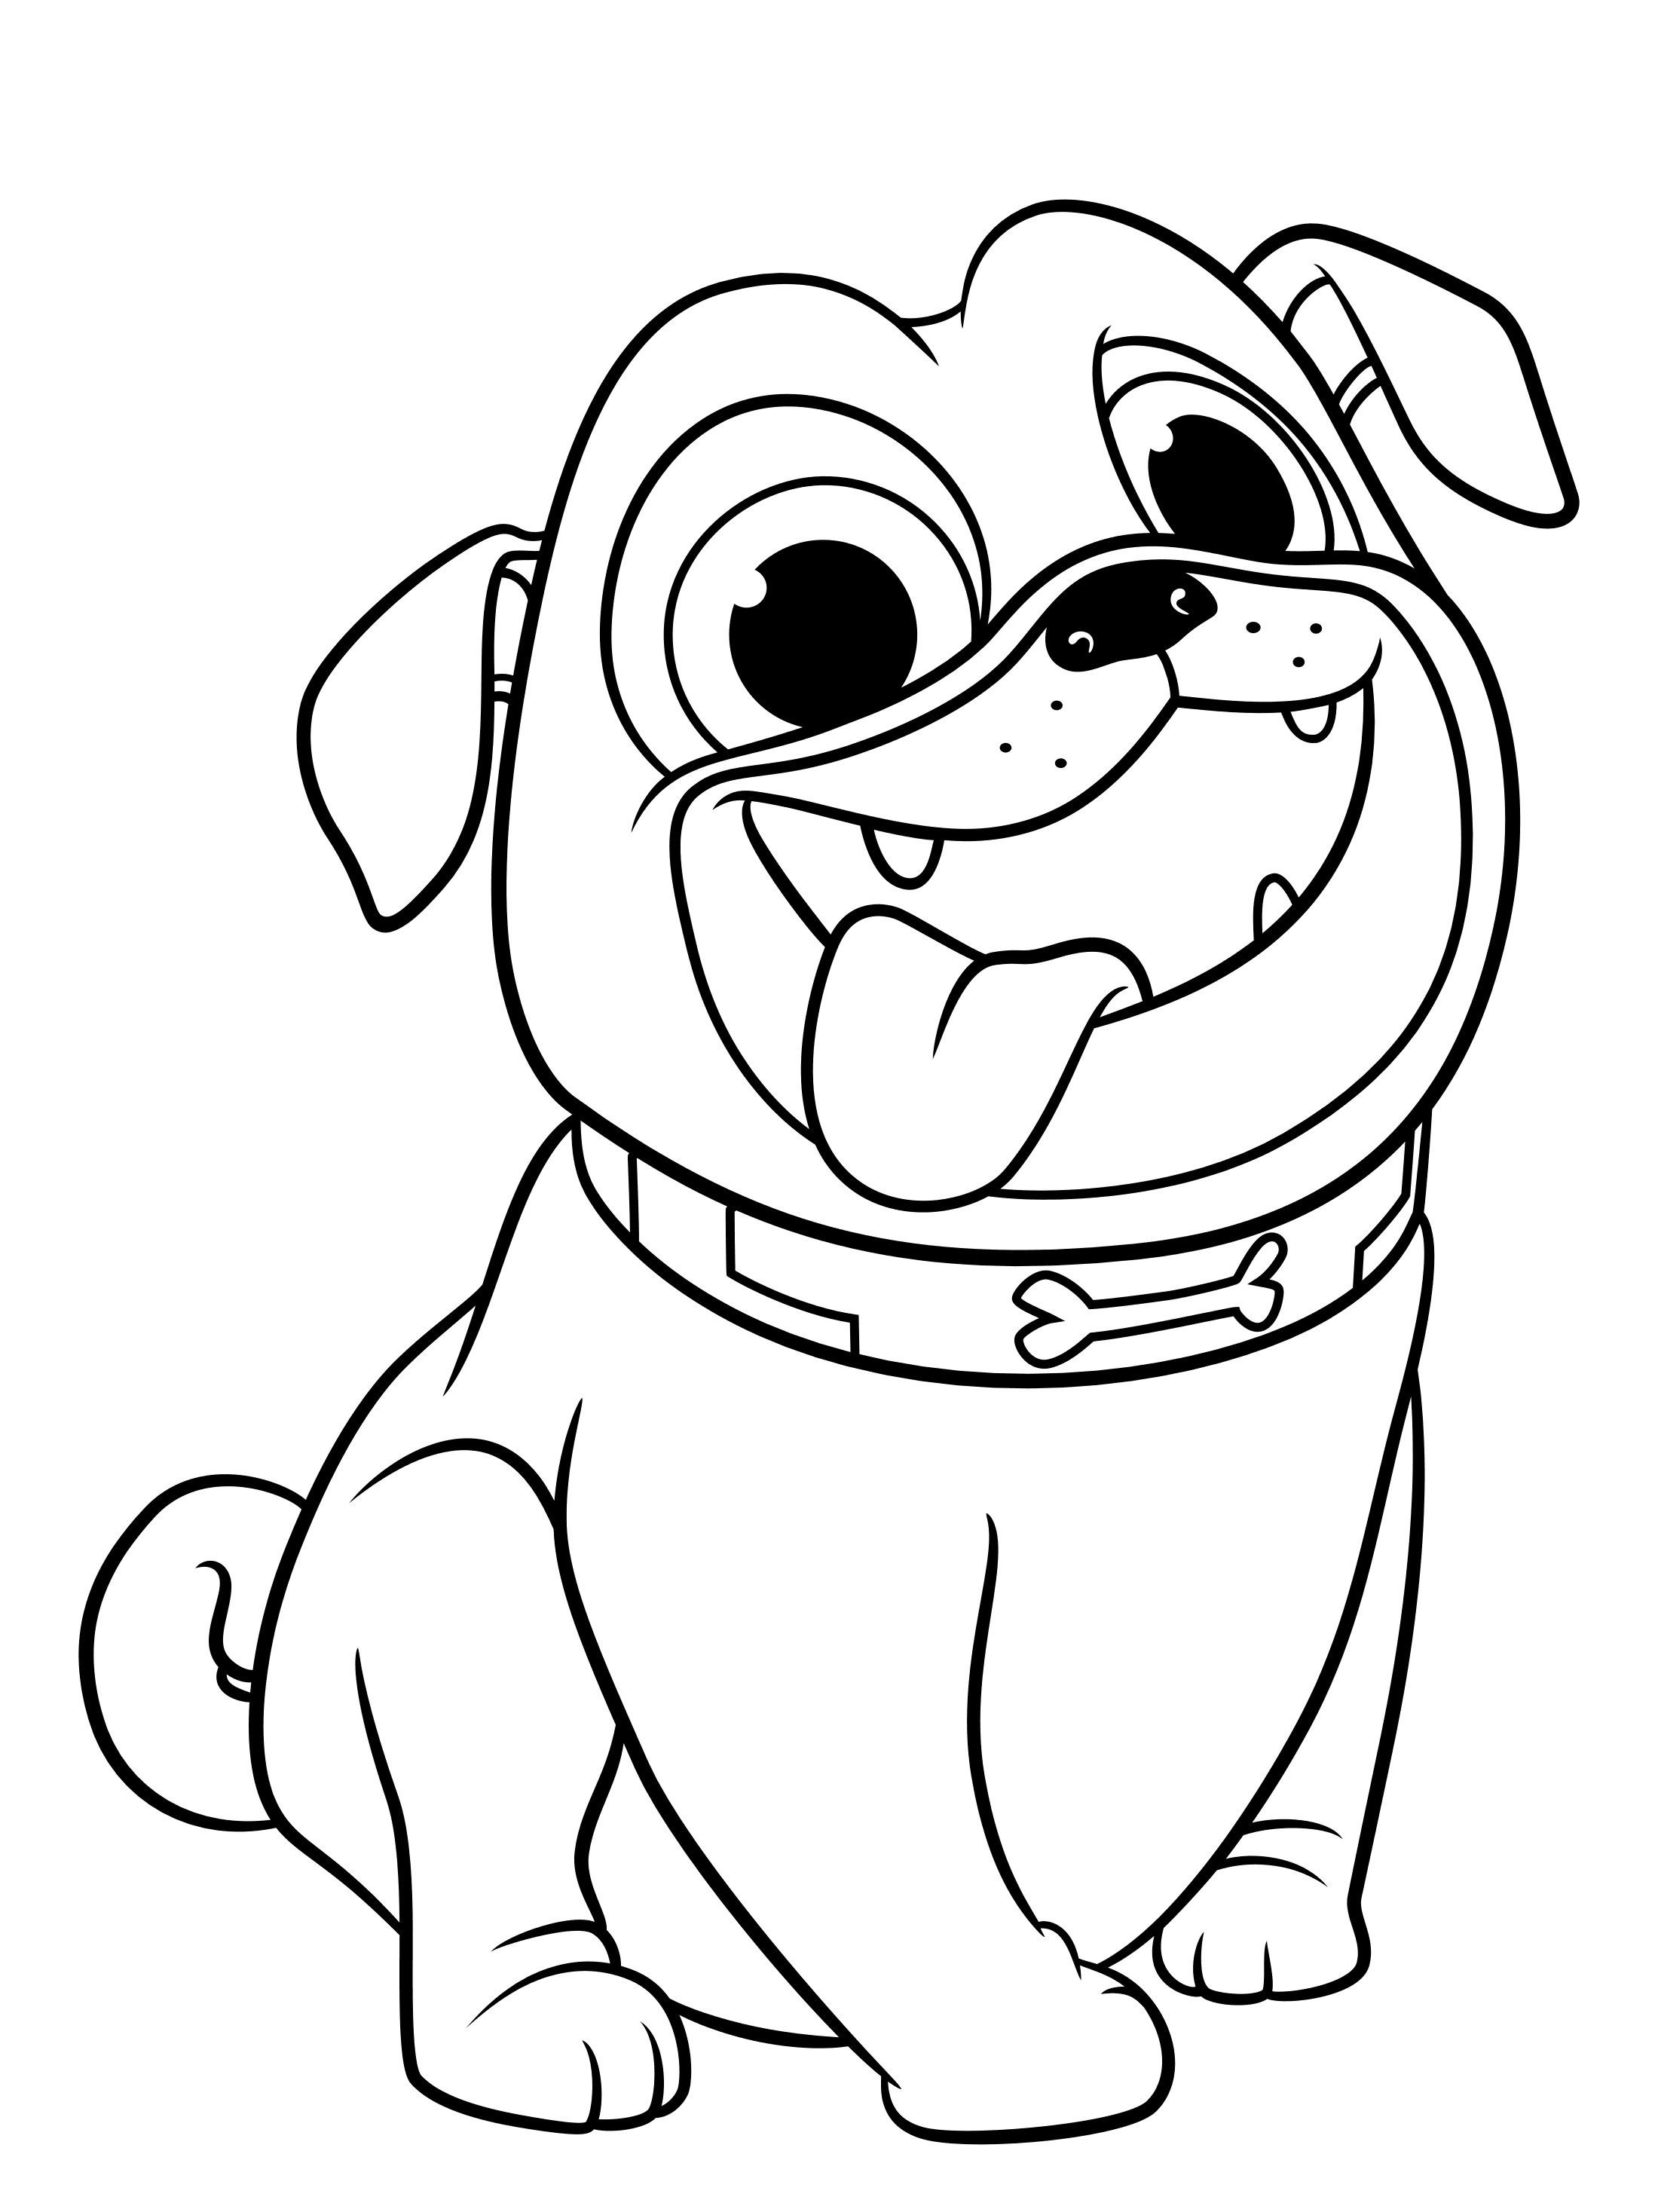 Puppy Dog Pals Coloring Pages Dog Coloring Page Puppy Coloring Pages Animal Coloring Pages